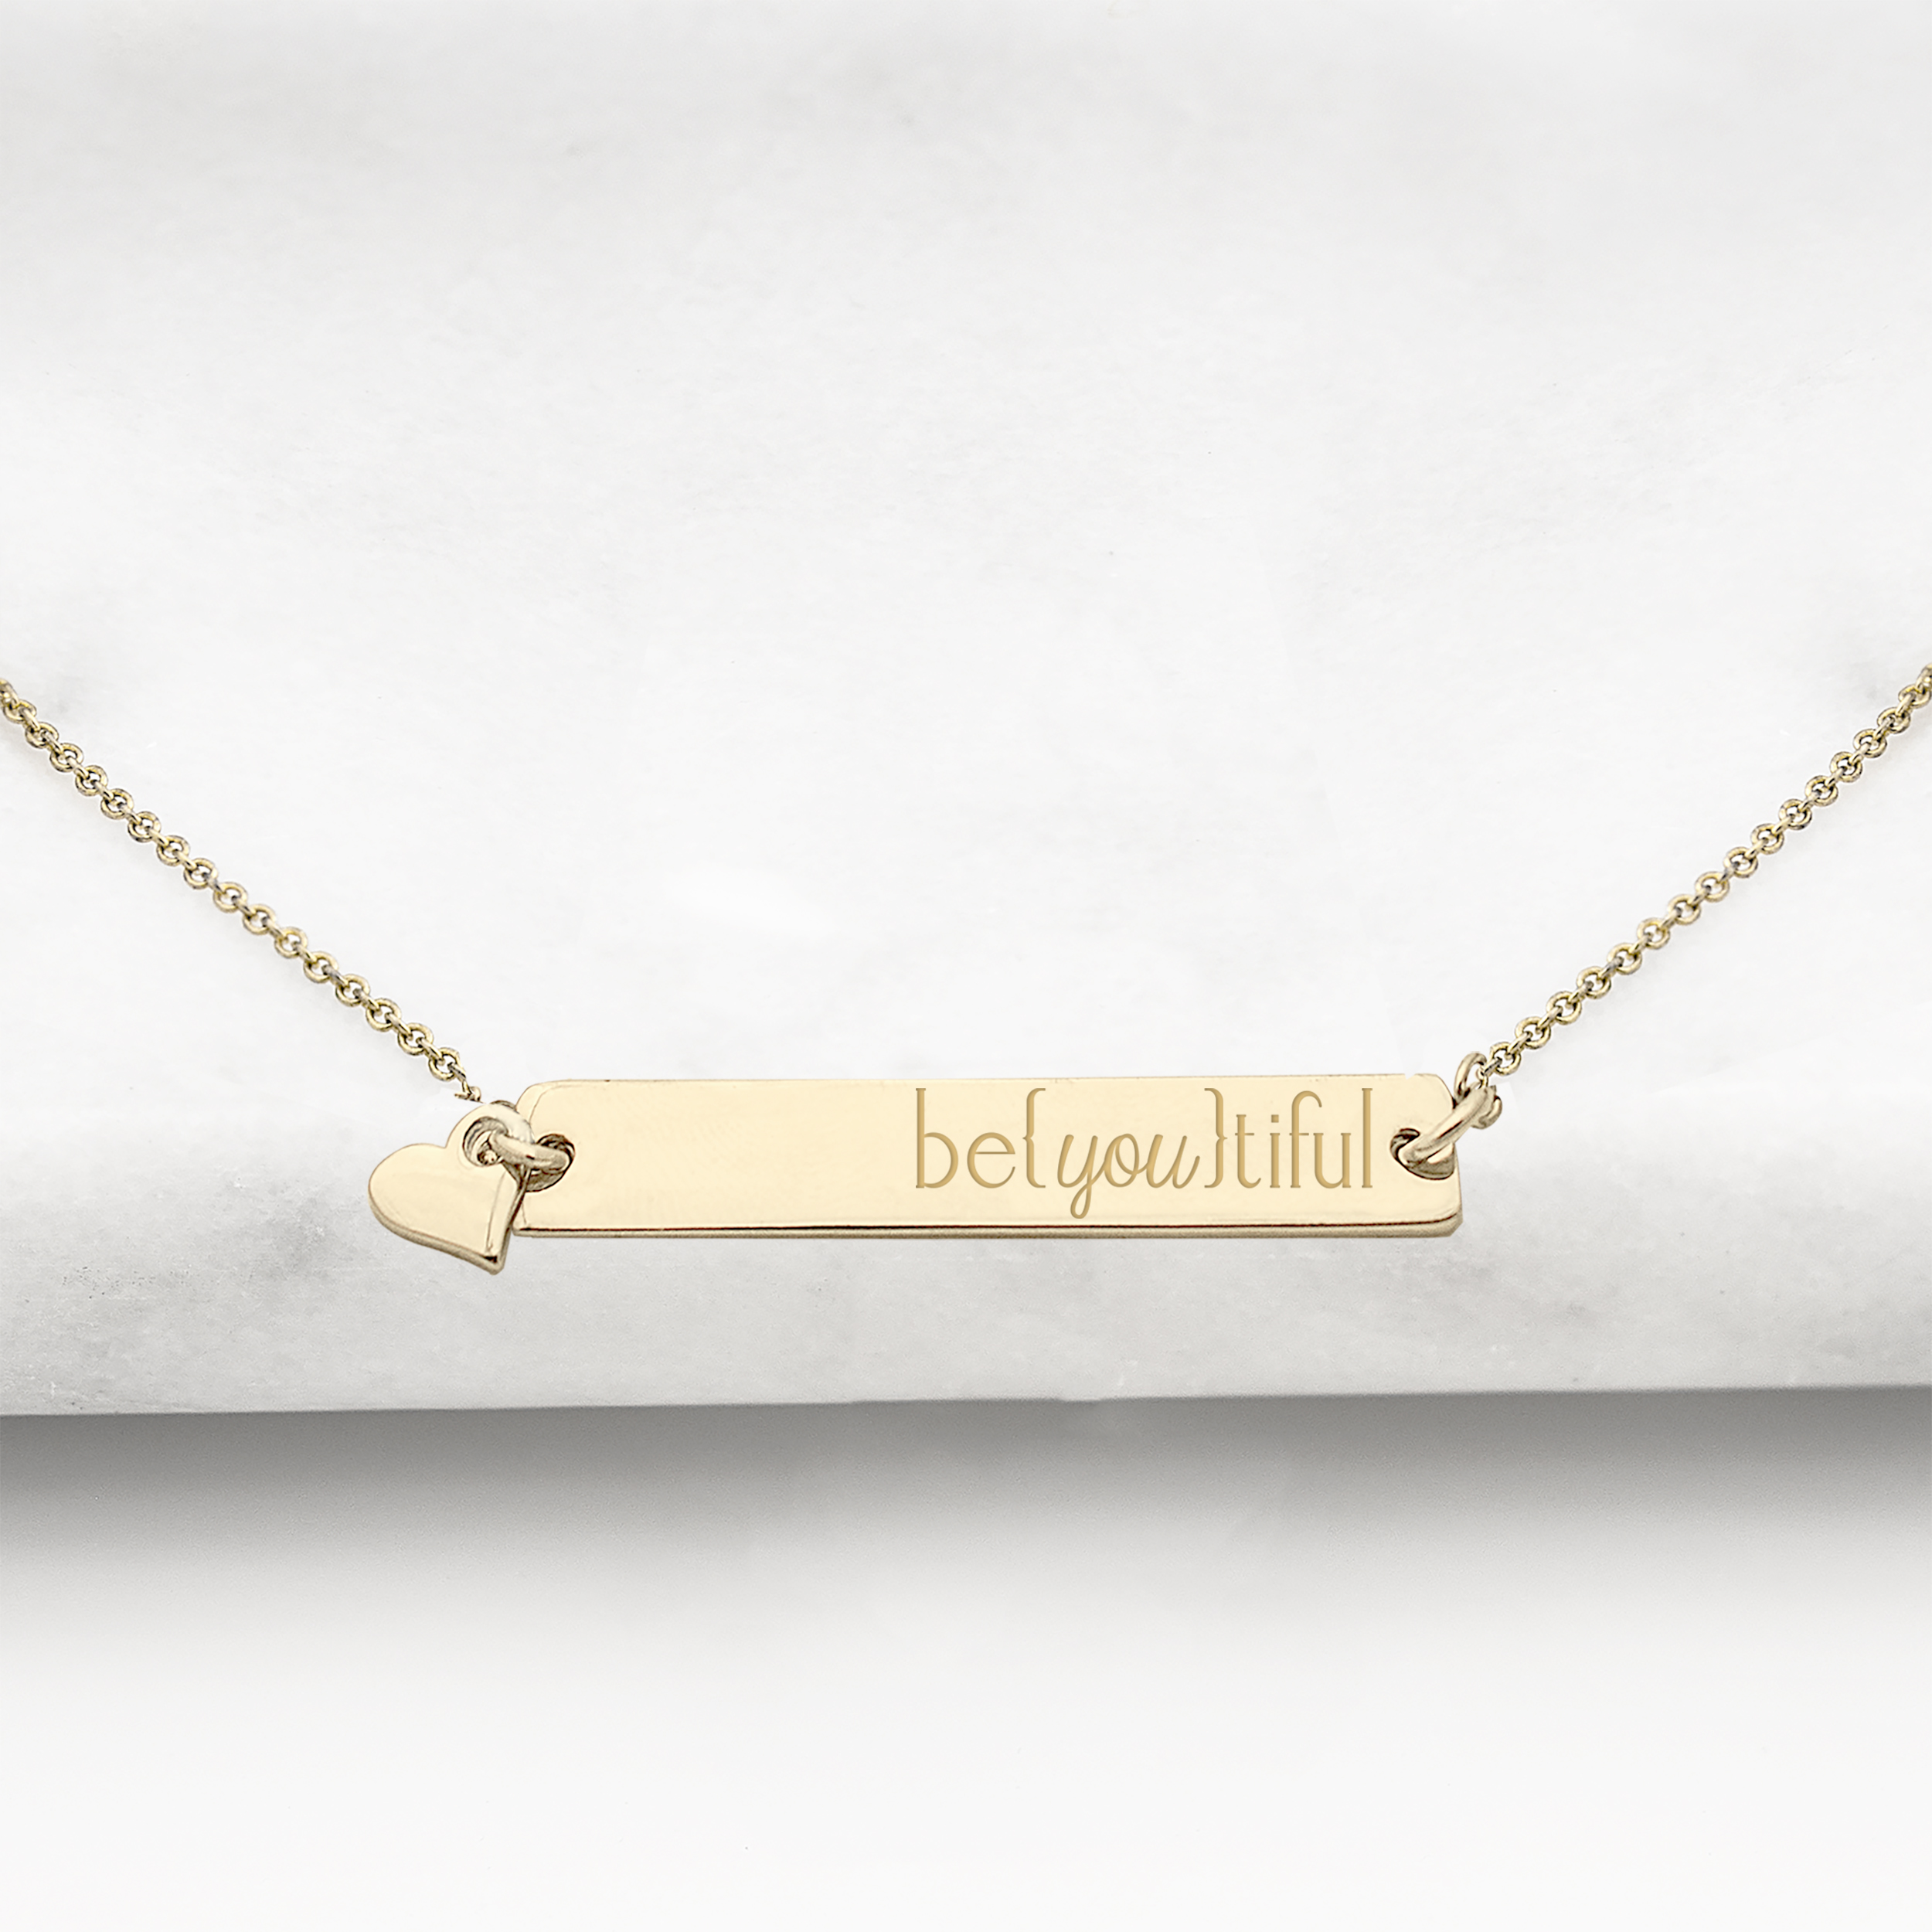 Cathys Concepts U-N9105G-BE Beyoutiful Gold Horizontal Bar Necklace